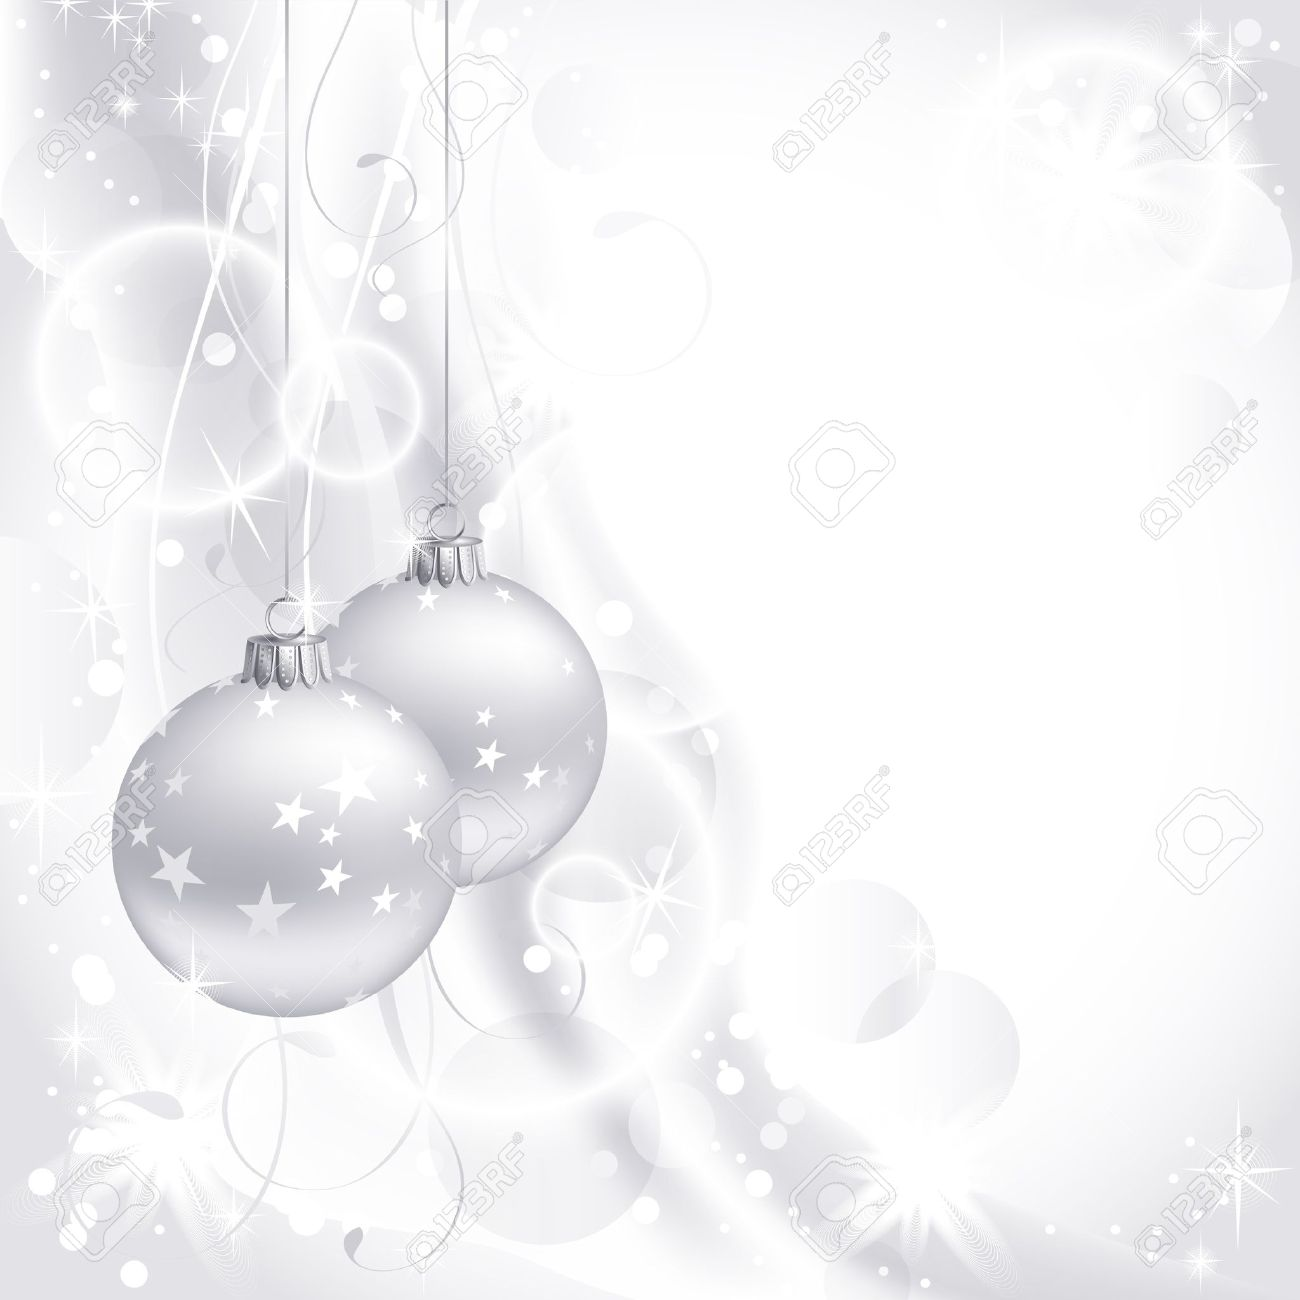 White Christmas Images Free.Good Looking White Christmas Backdrop With Two Balls